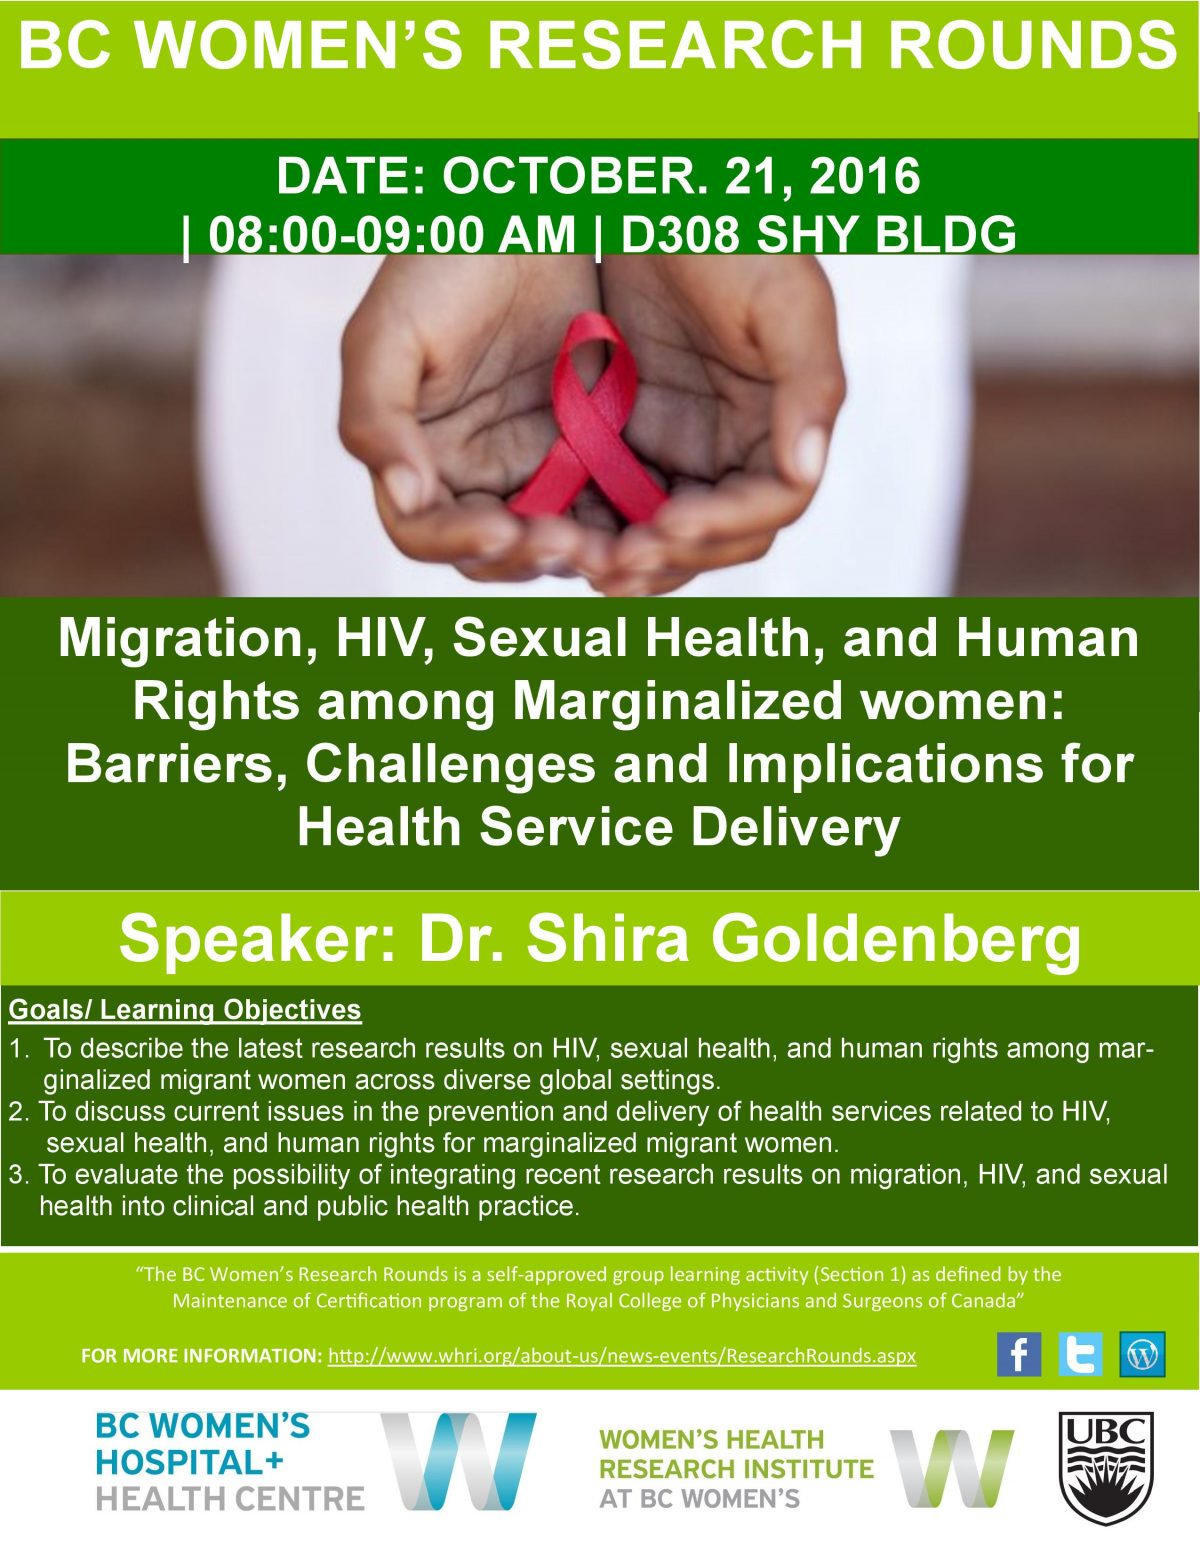 BC Women's Research Rounds: Migration, HIV, Sexual Health, and Human Rights among Marginalized women: Barriers, Challenges and Implications for Health Service Delivery